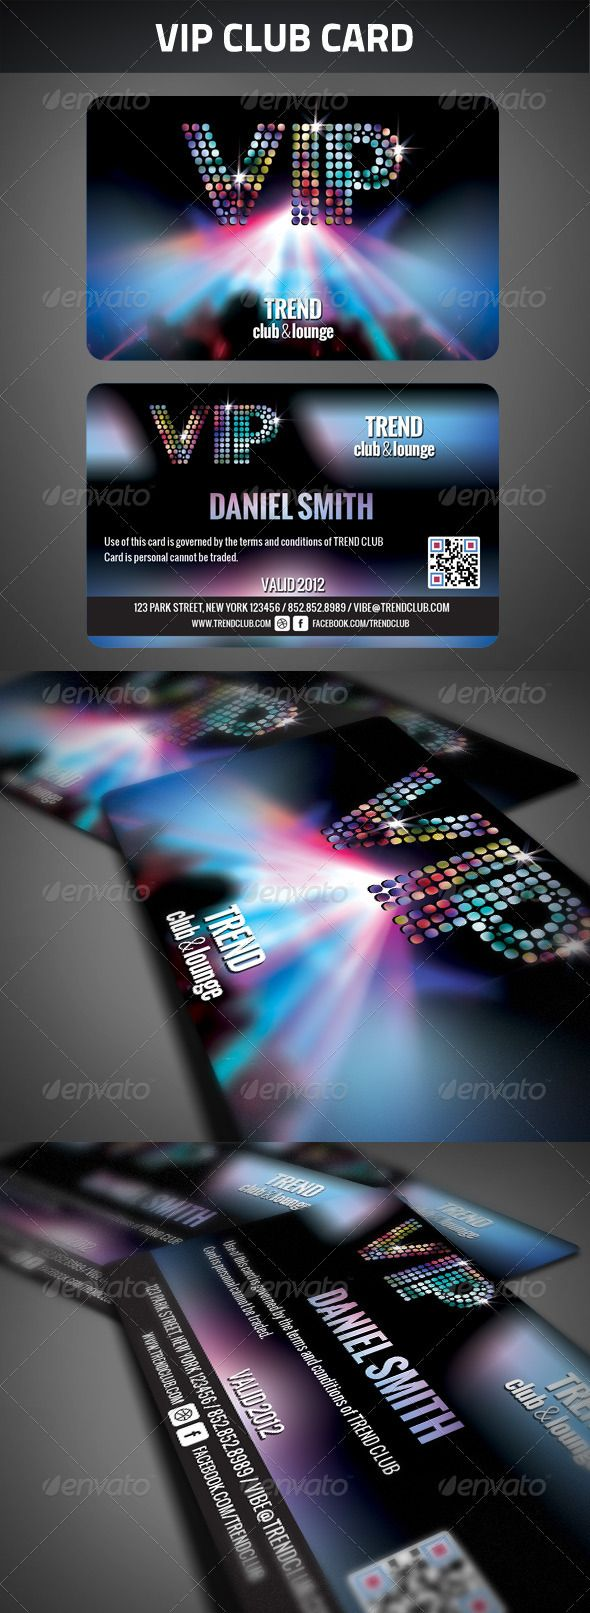 63 best Membership cards images – Membership Card Samples